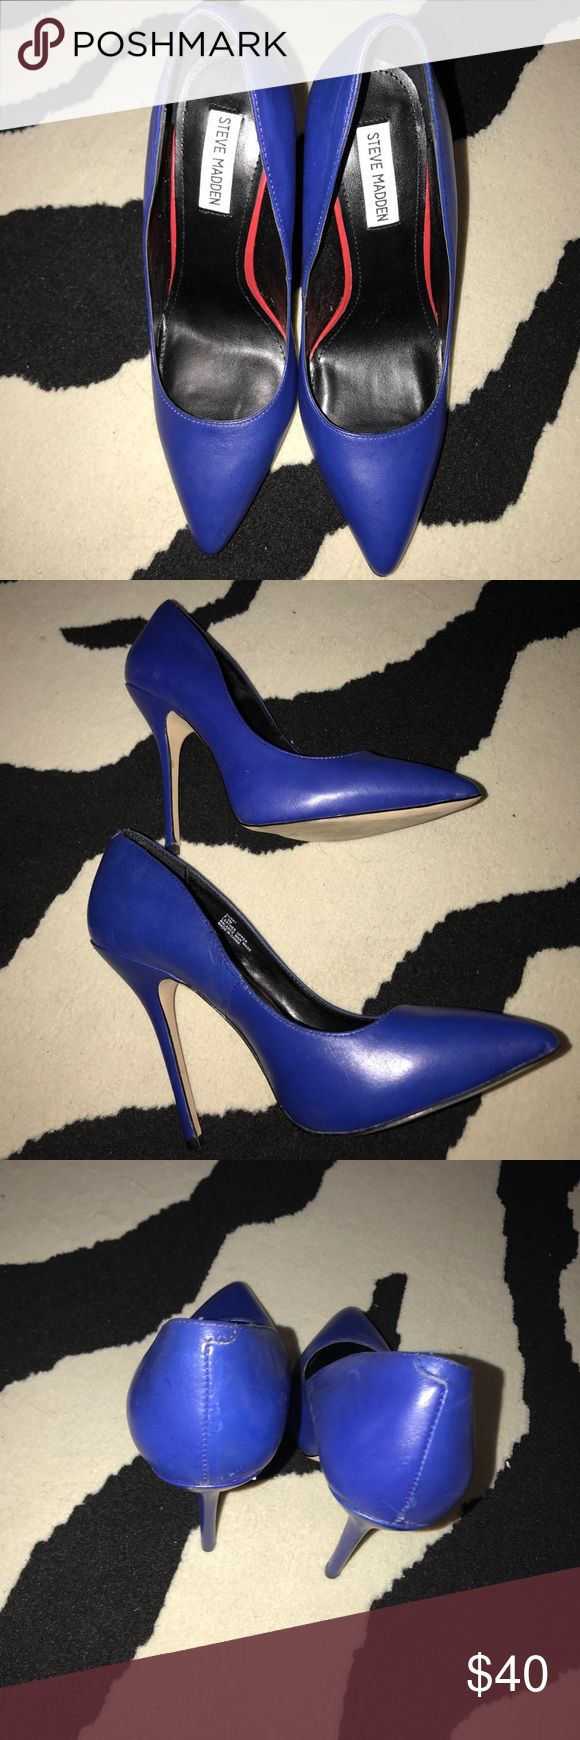 Sexy Steve Madden Royal Blue Pump Size 9.5 Sexy Steve Madden Royal Blue Pump Size 9.5 Worn Twice. Sexy, Comfortable Heel for dress or jeans. Heel height is 4.5. Great condition. Steve Madden Shoes Heels